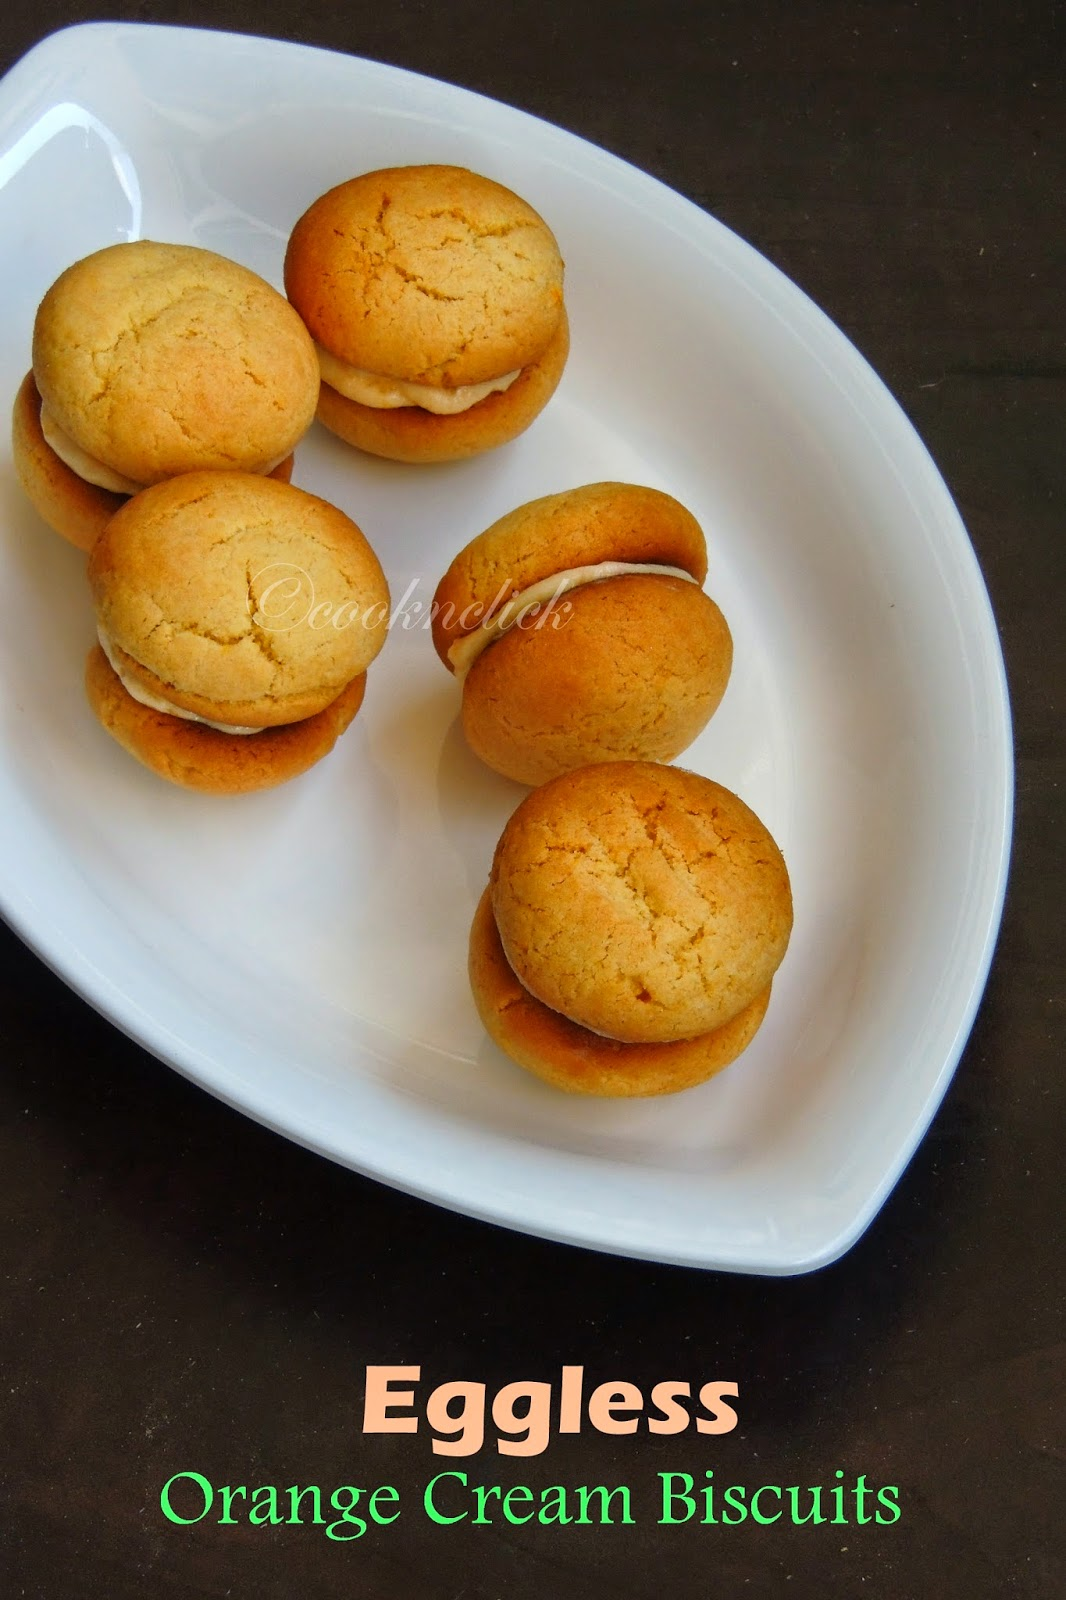 Orange cream biscuits, Cream biscuits with hung curd, Orange cream biscuits